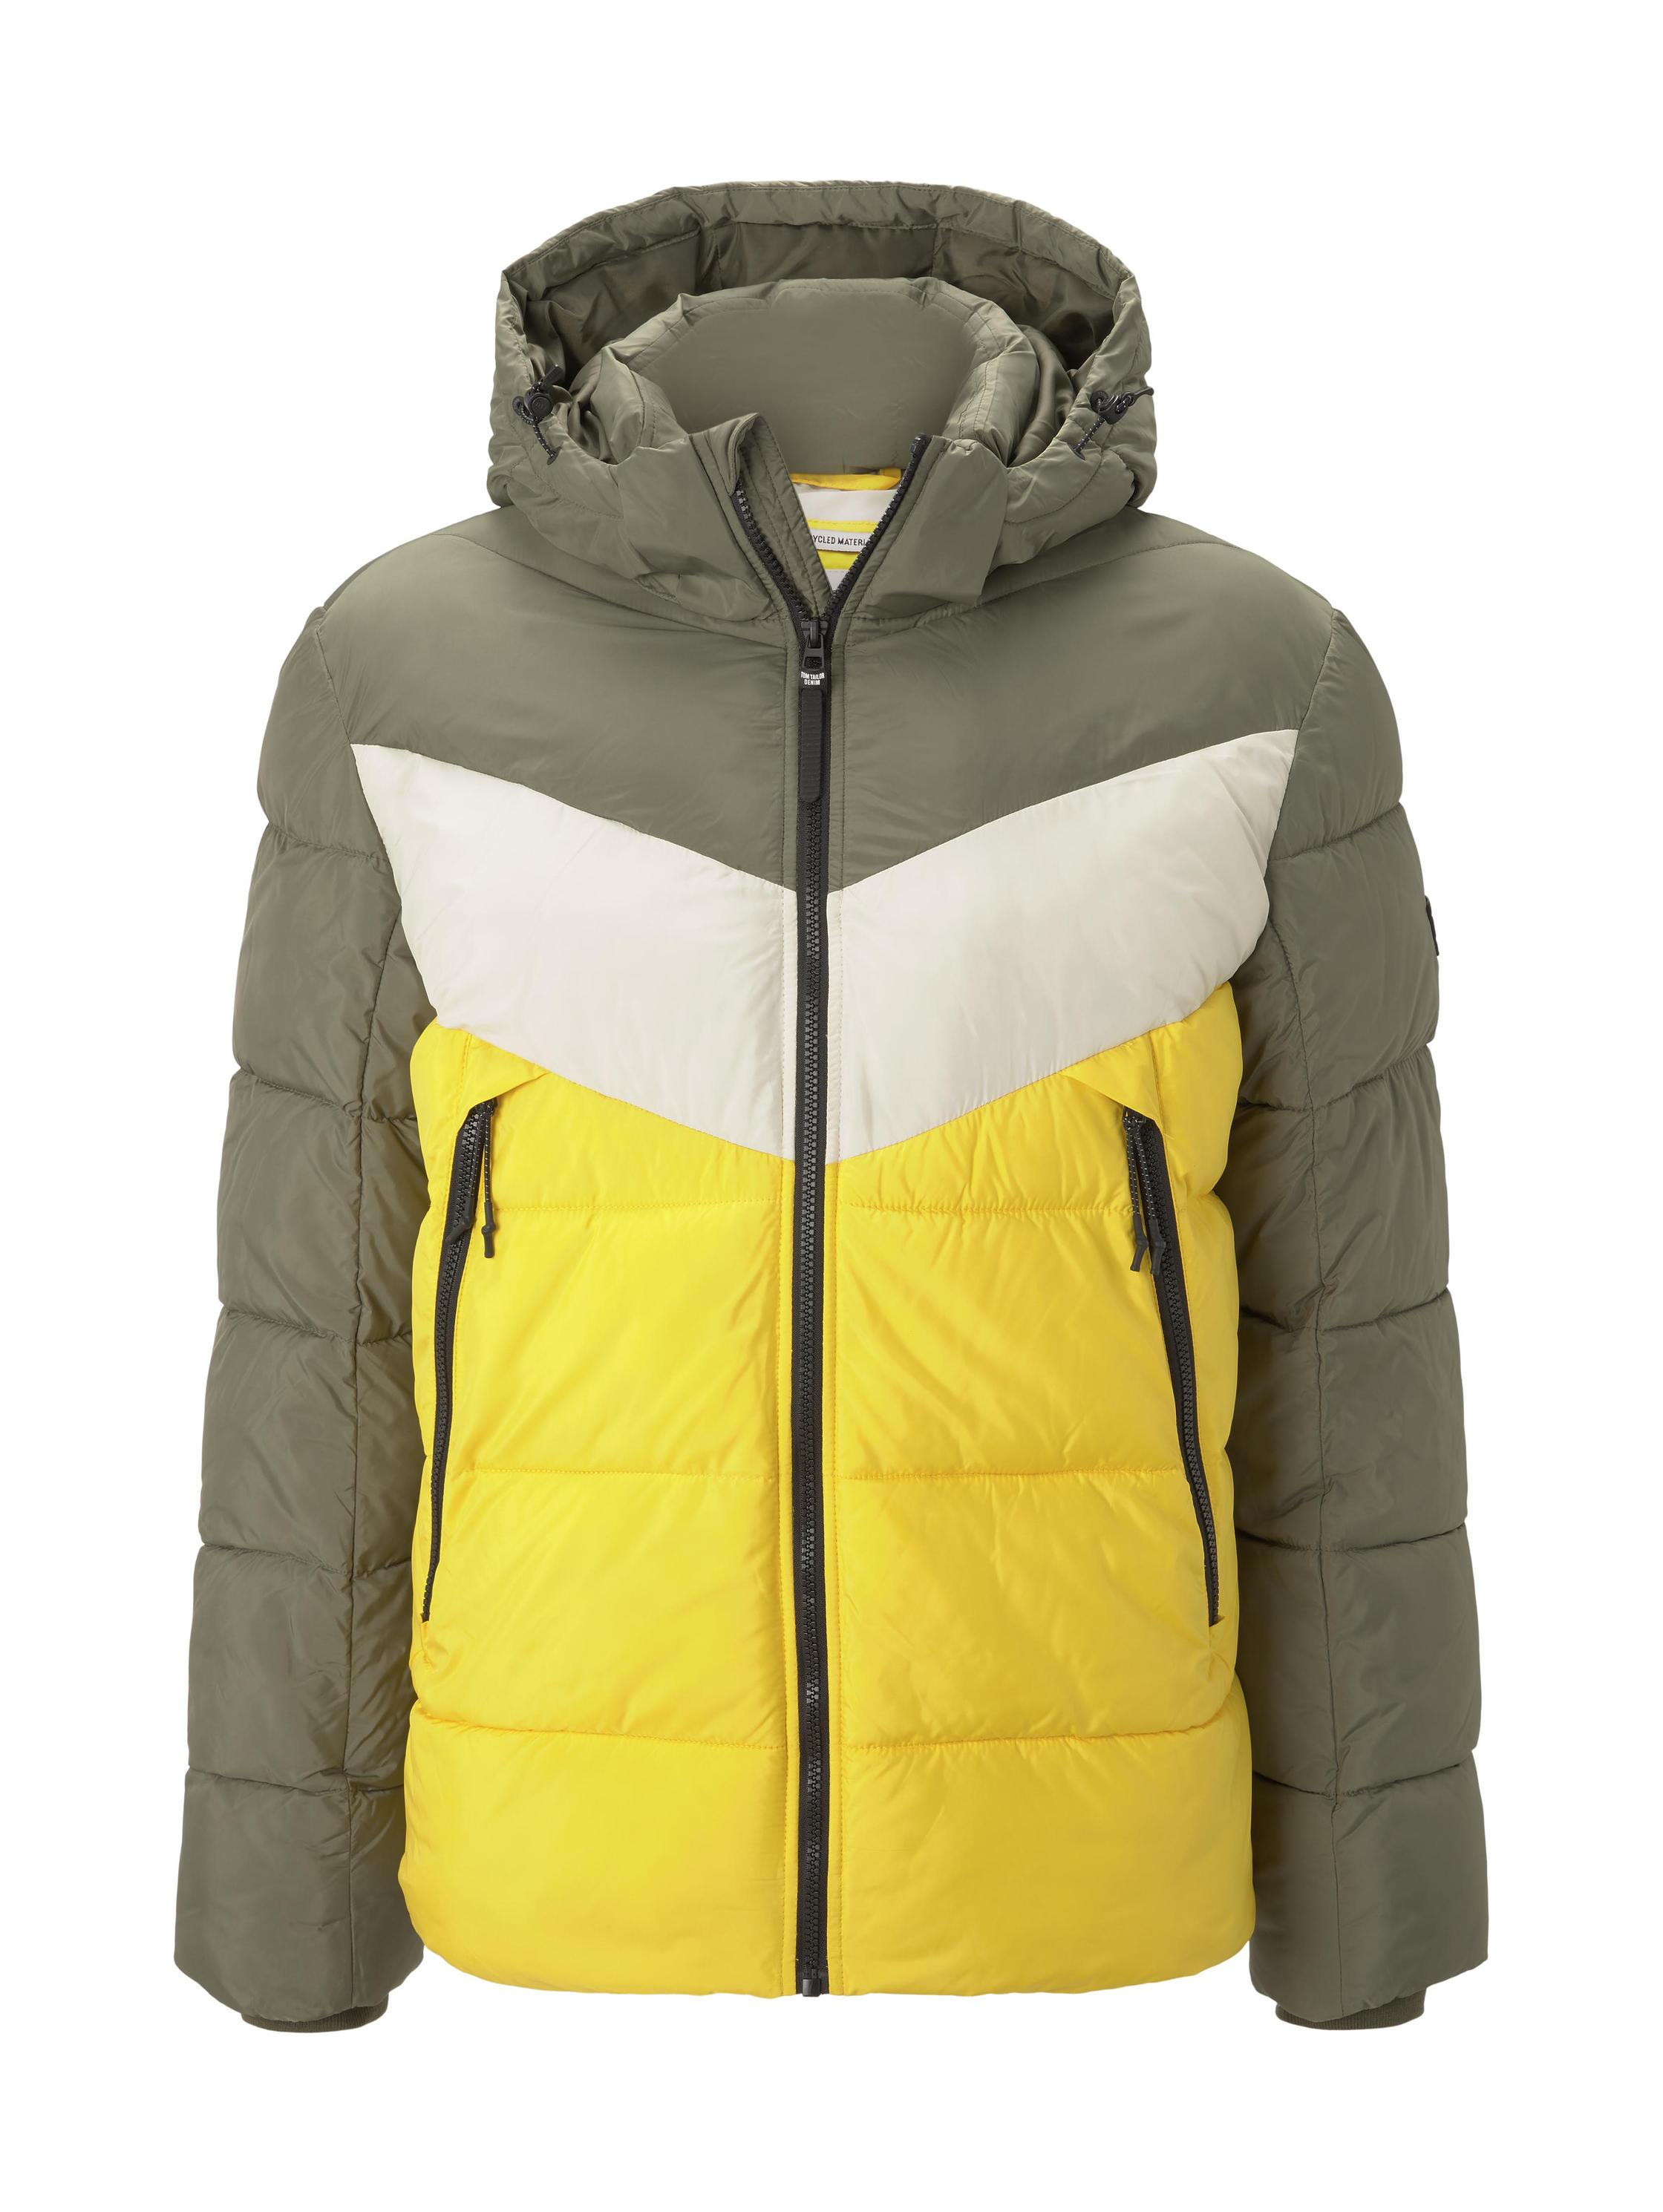 Heavy puffer jacket, tri color colorblock